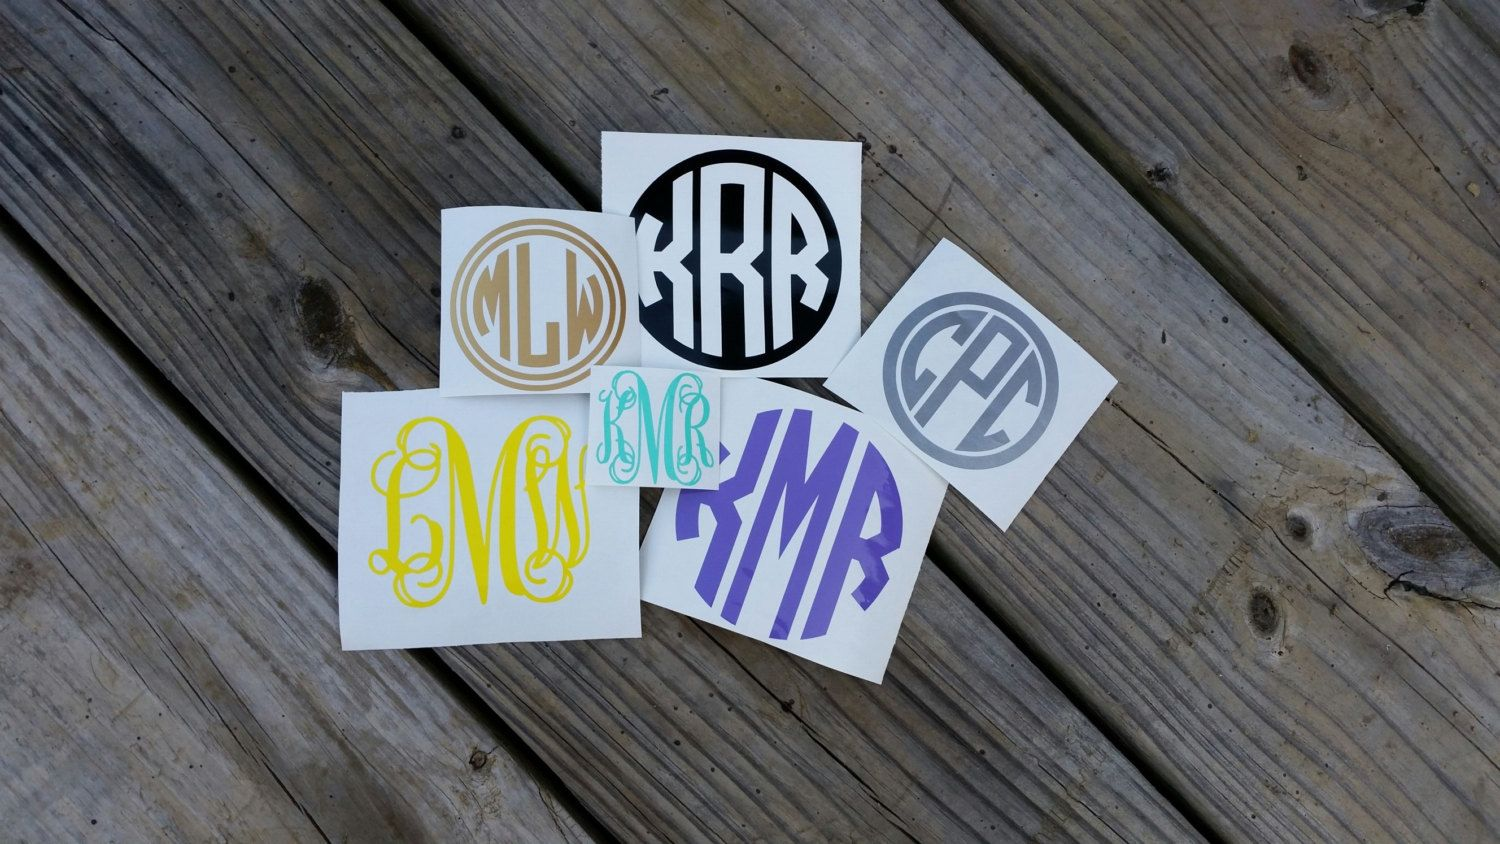 Personalized Monogram Decal, Monogram Sticker, Custom Decal, Car Decal Monogram, Car Initials Vinyl Initials Vinyl Lettering (Various Sizes) by CuttinUp2 on Etsy https://www.etsy.com/listing/210719068/personalized-monogram-decal-monogram